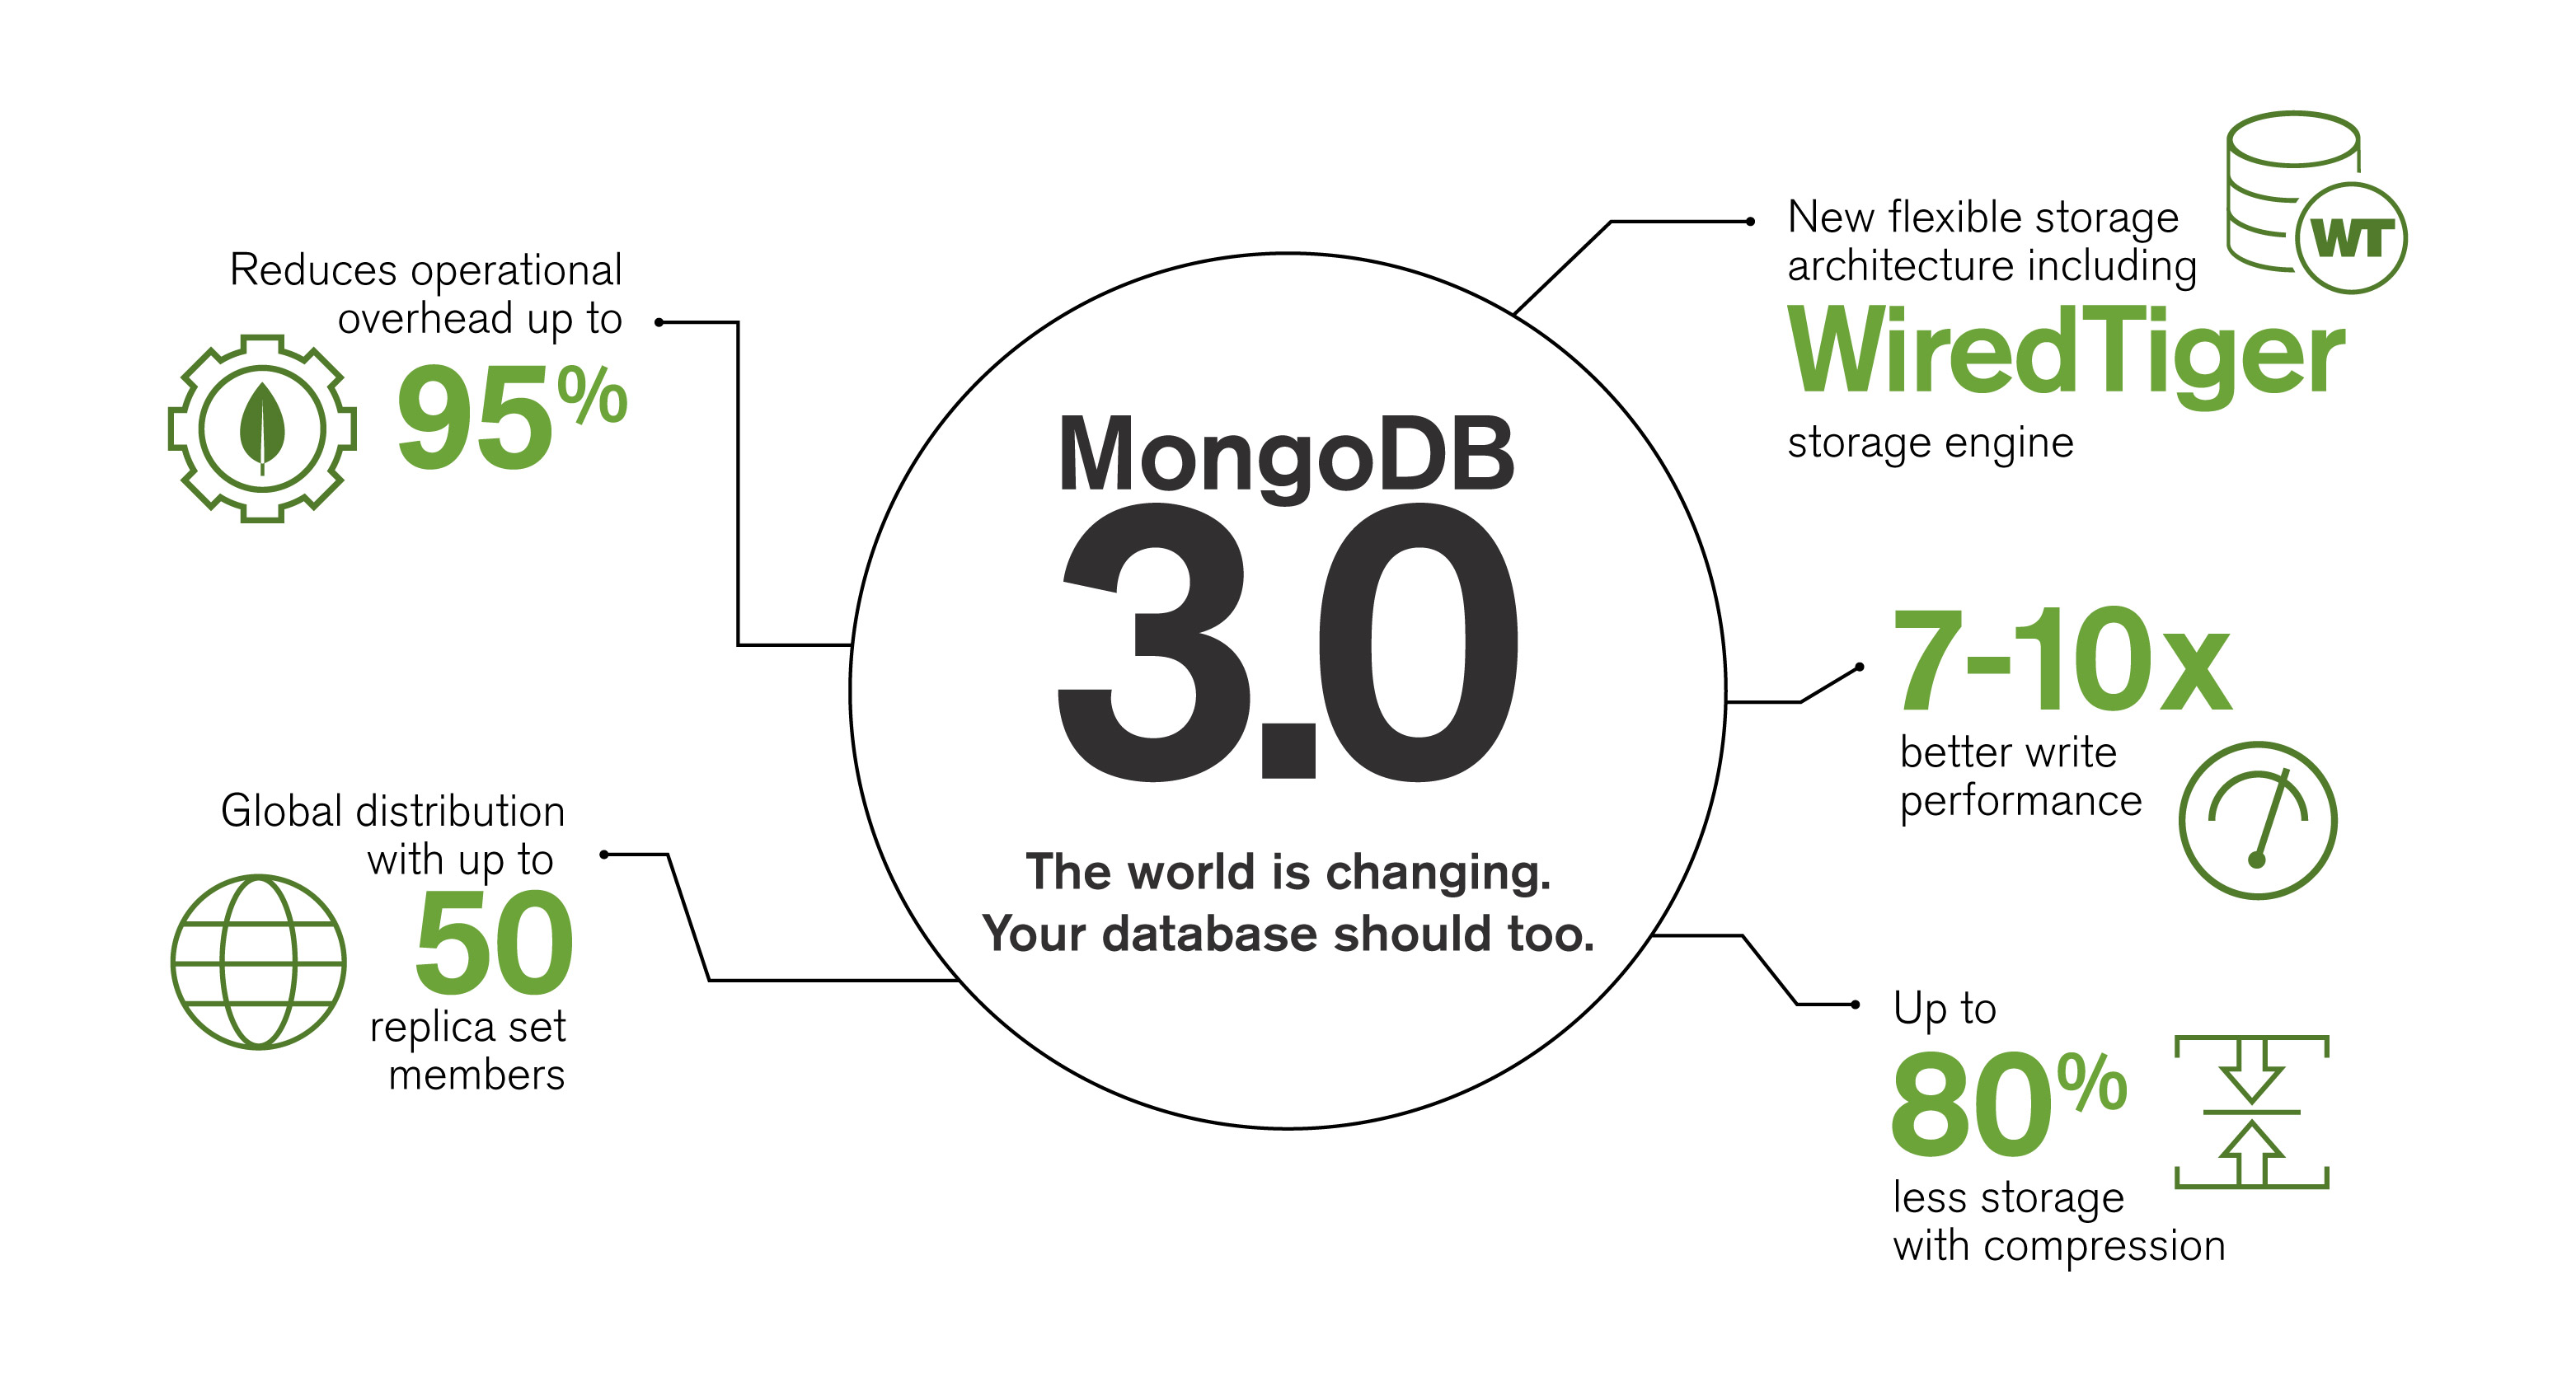 http://info.mongodb.com/rs/mongodb/images/FINAL%20-%203.0Launch-Infographic-v7-1.jpg